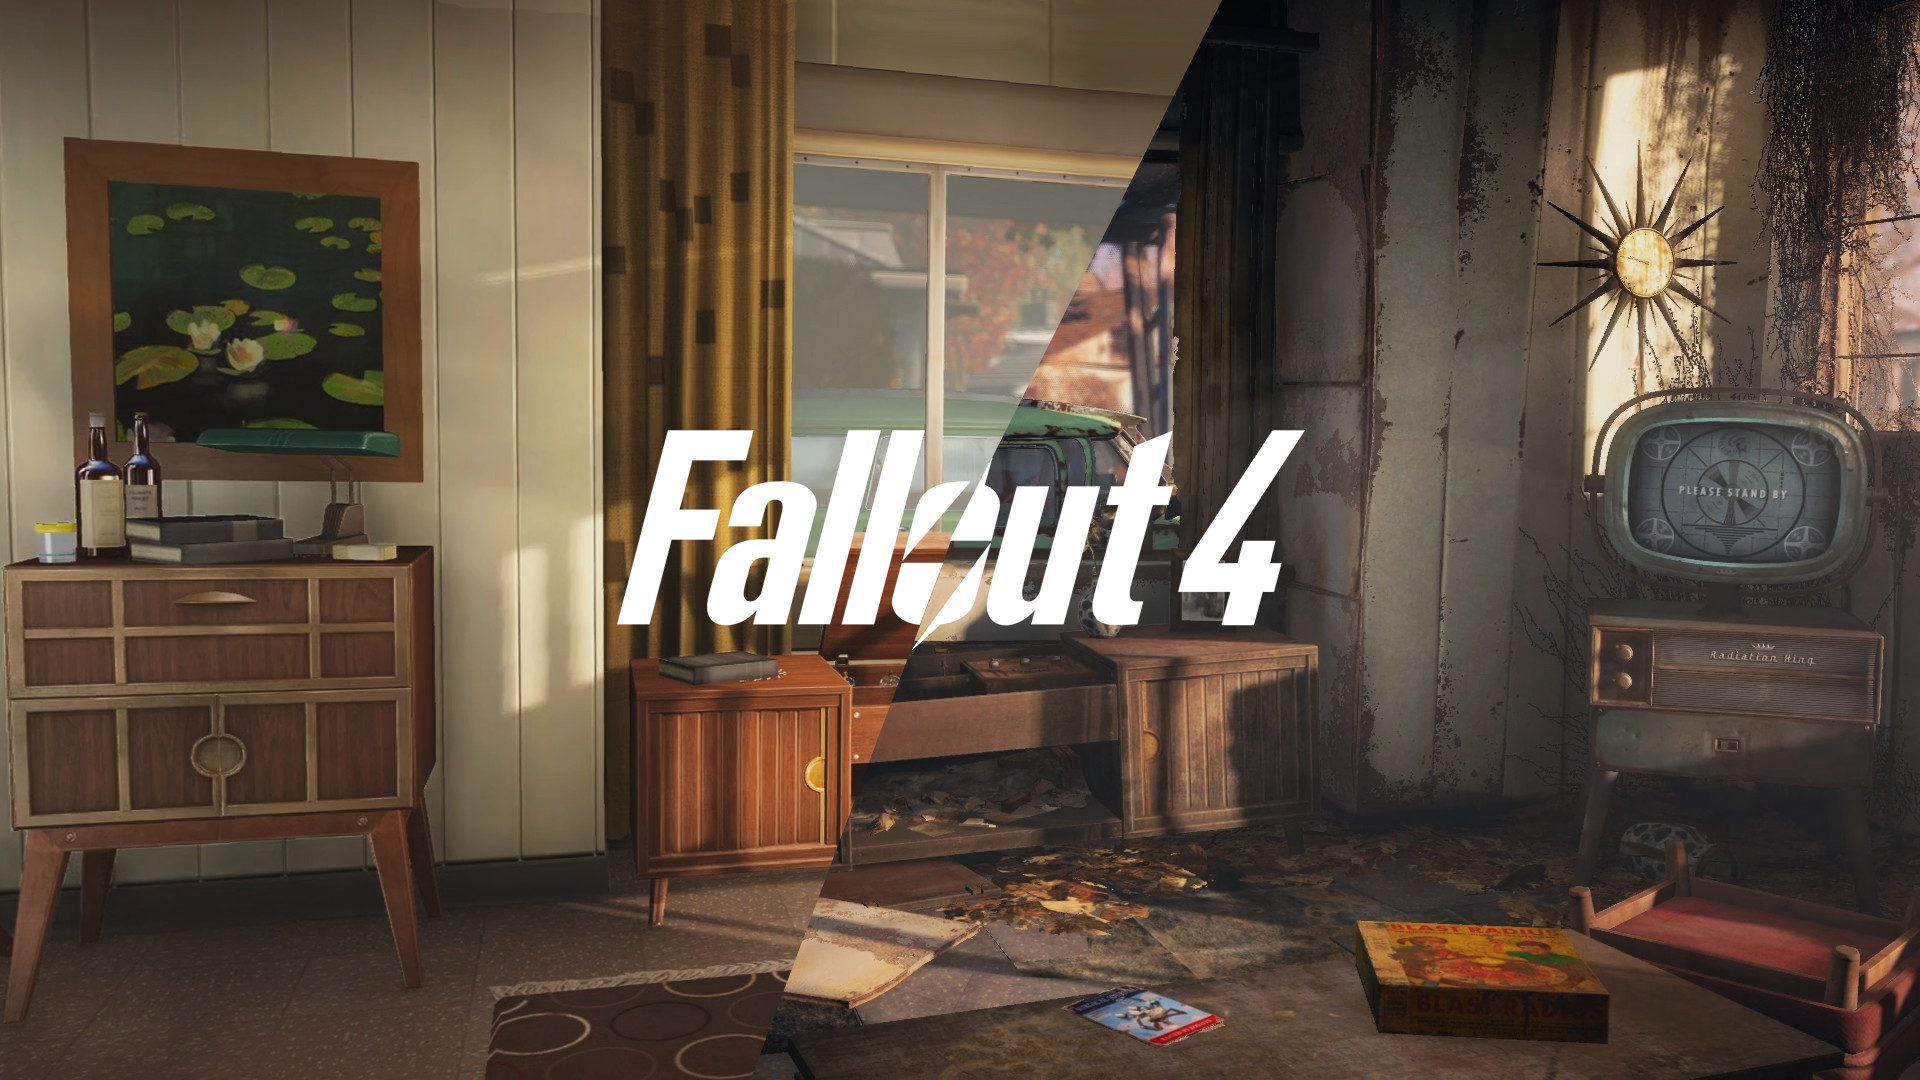 2016 4K Fallout 4 HDQ Wallpapers | NMgnCP